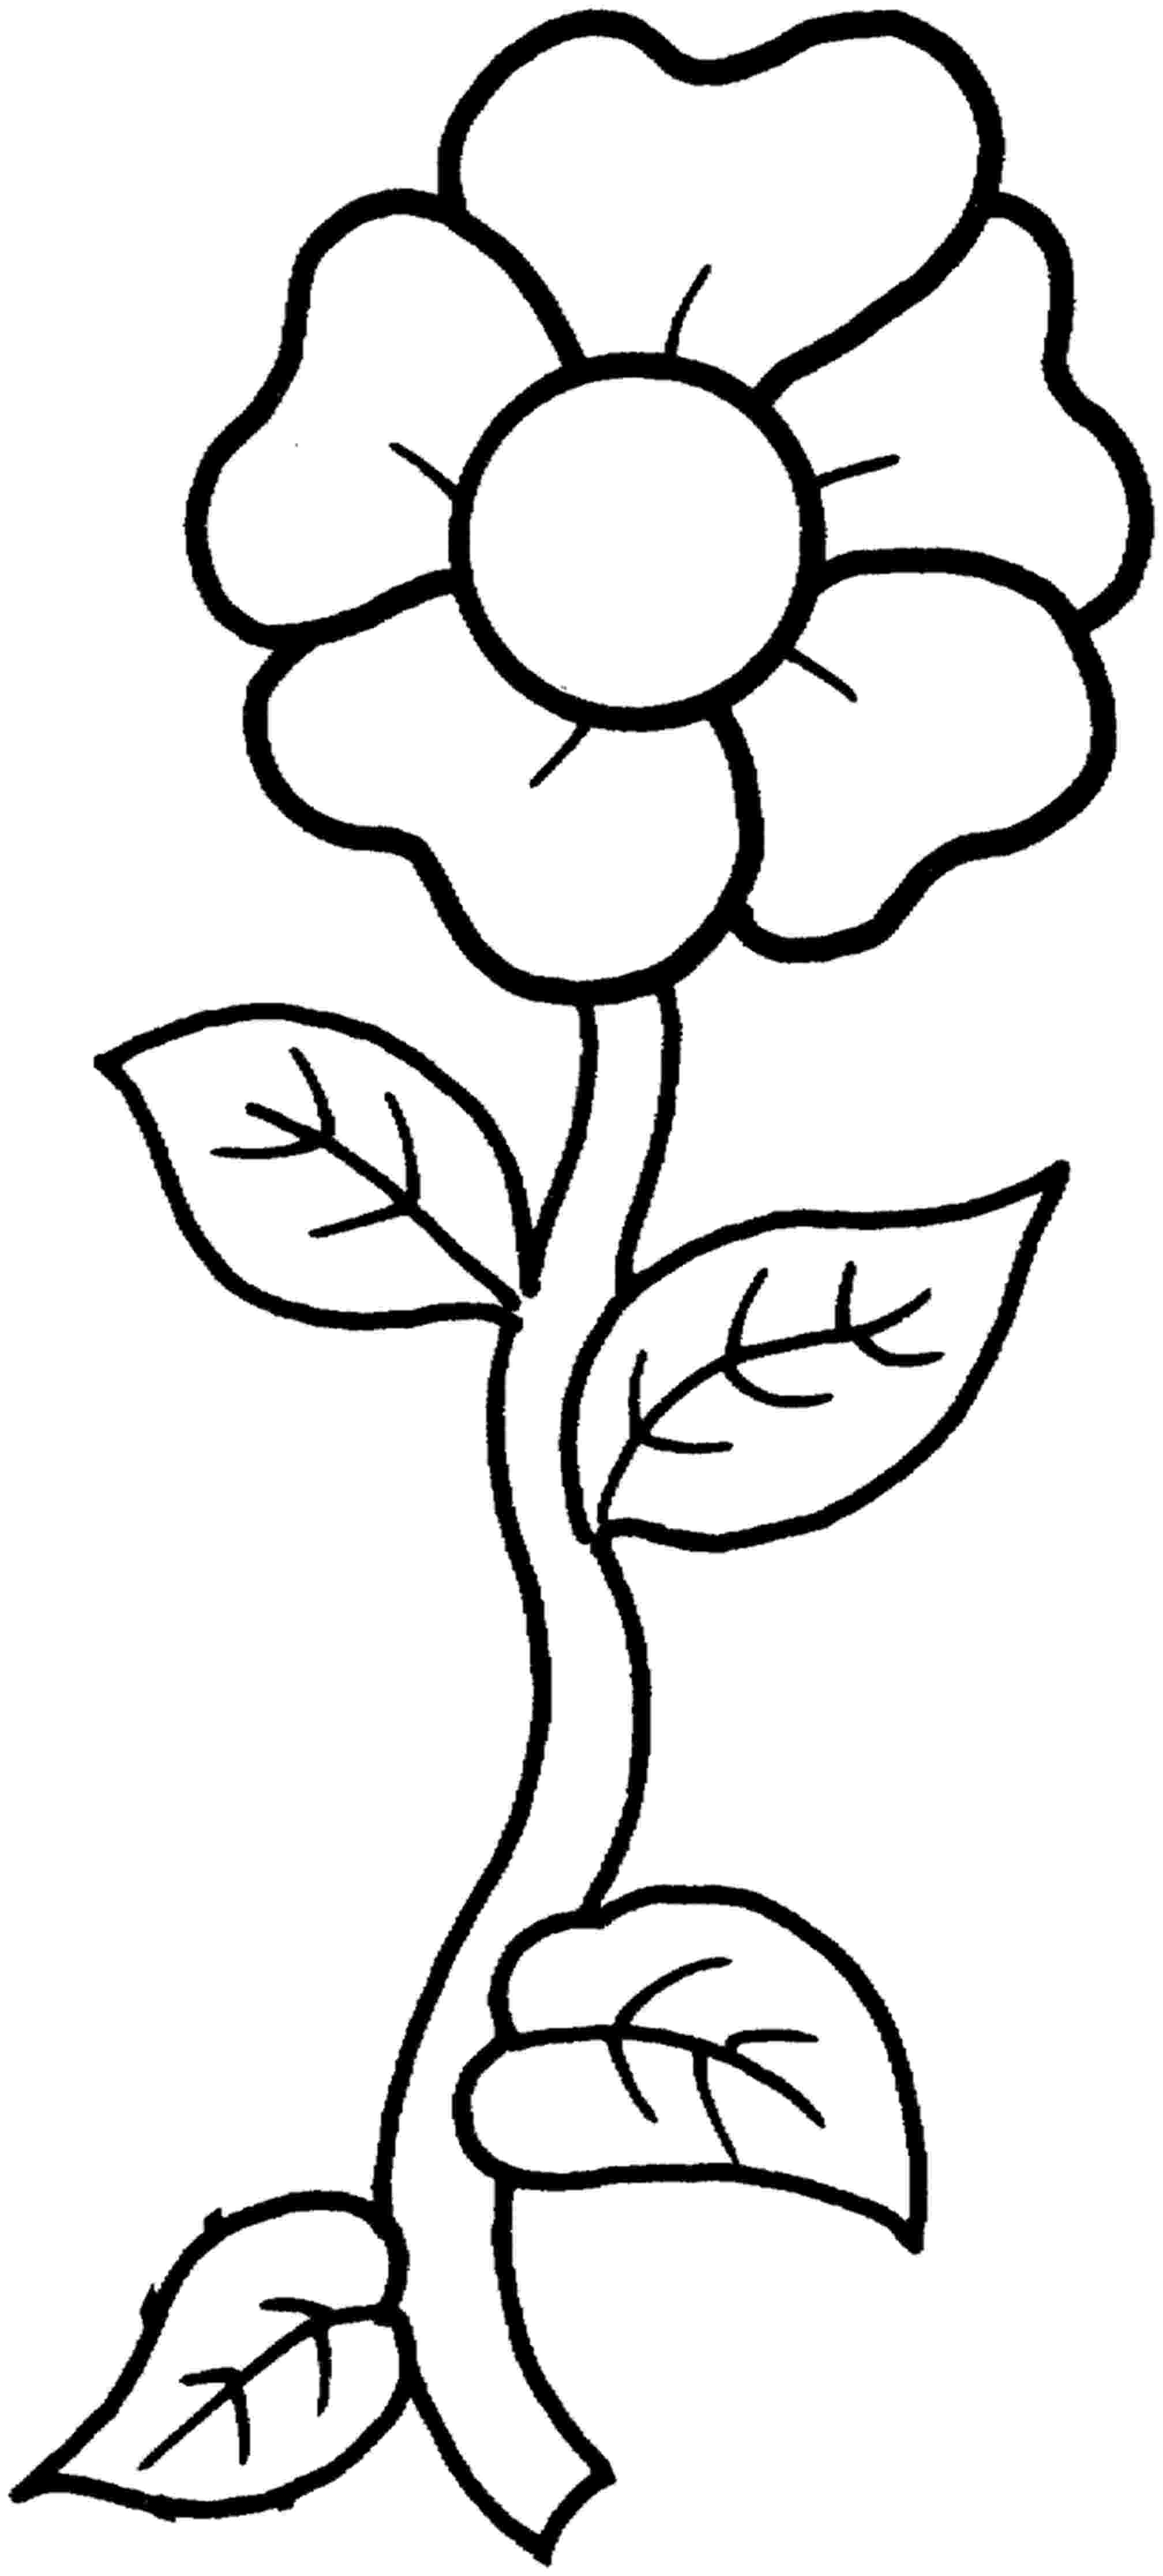 picture of flower for colouring free printable flower coloring pages for kids best for colouring picture of flower